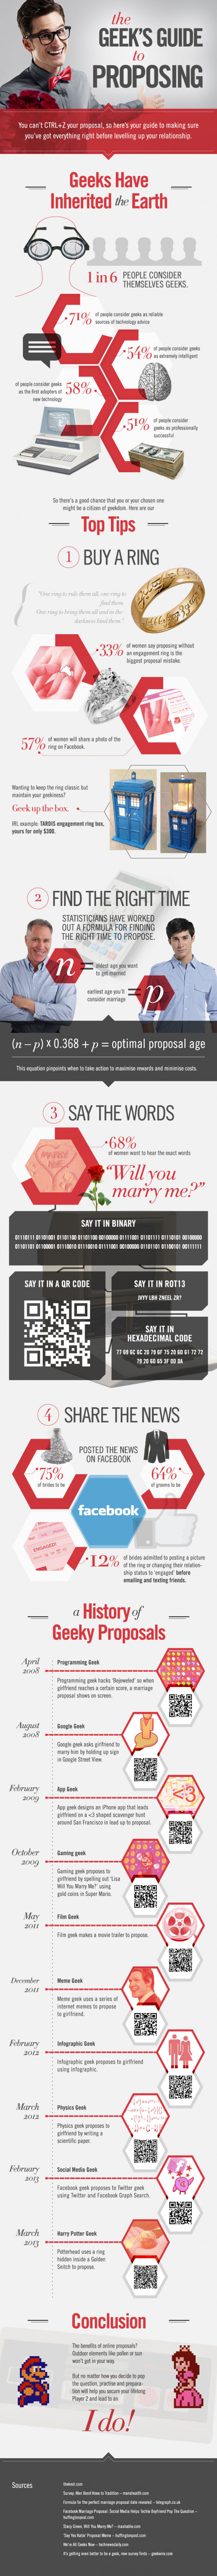 The Geek�s Guide to Proposing